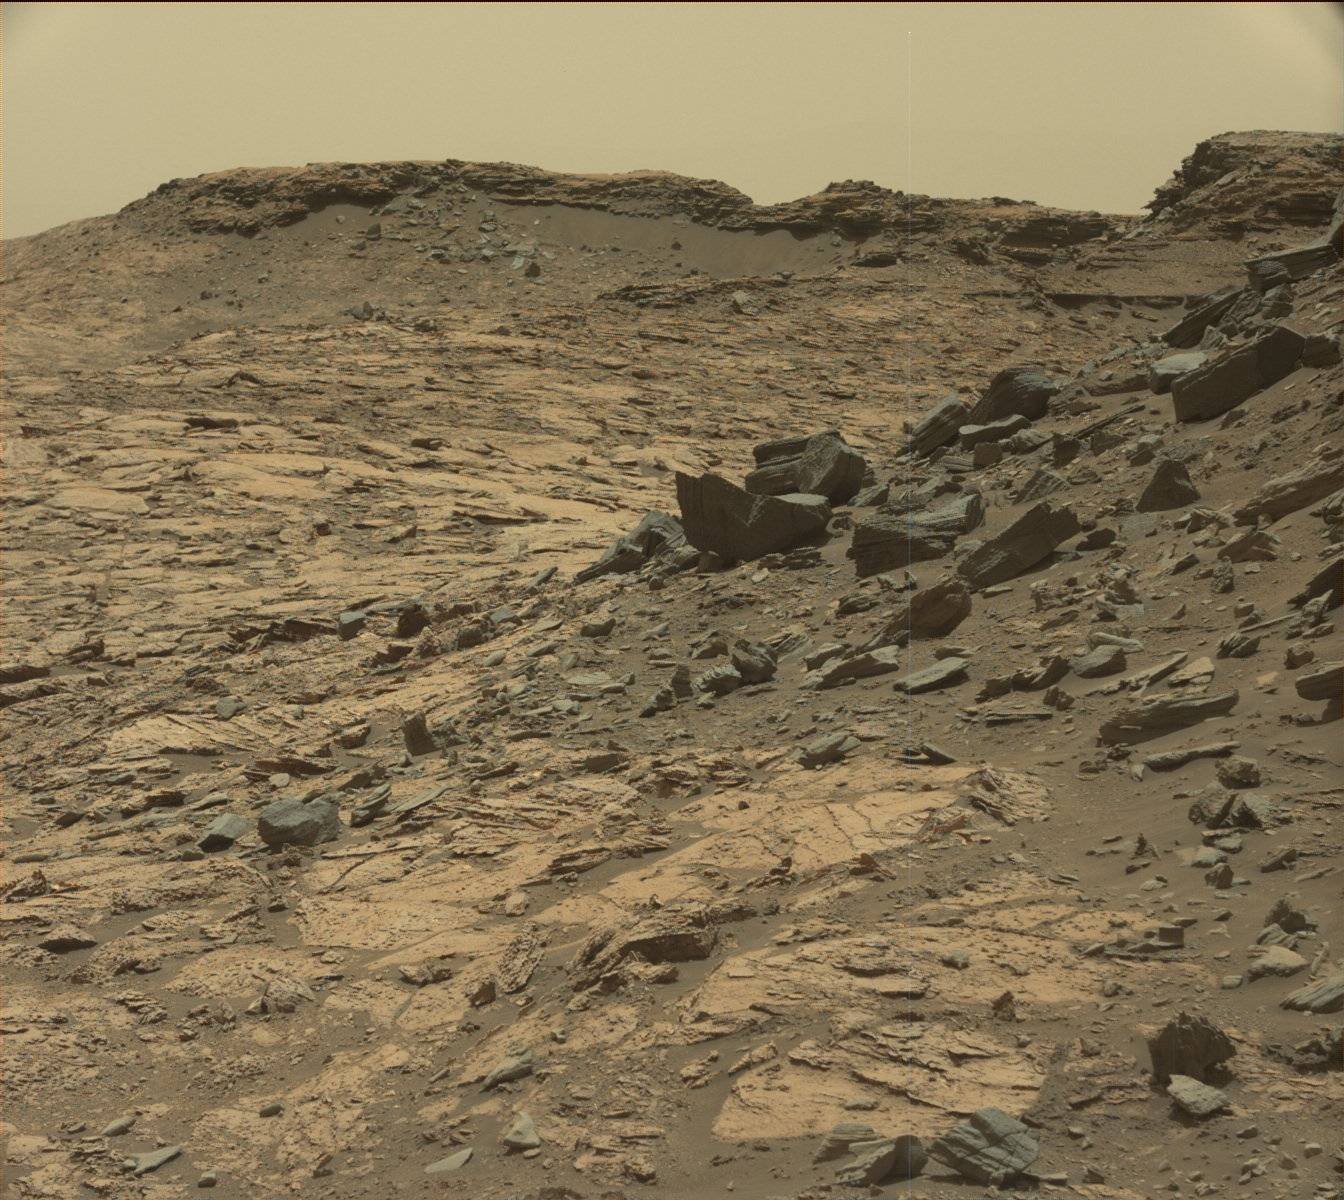 Mars Building Debris Everywhere In New Curiosity Rover ...